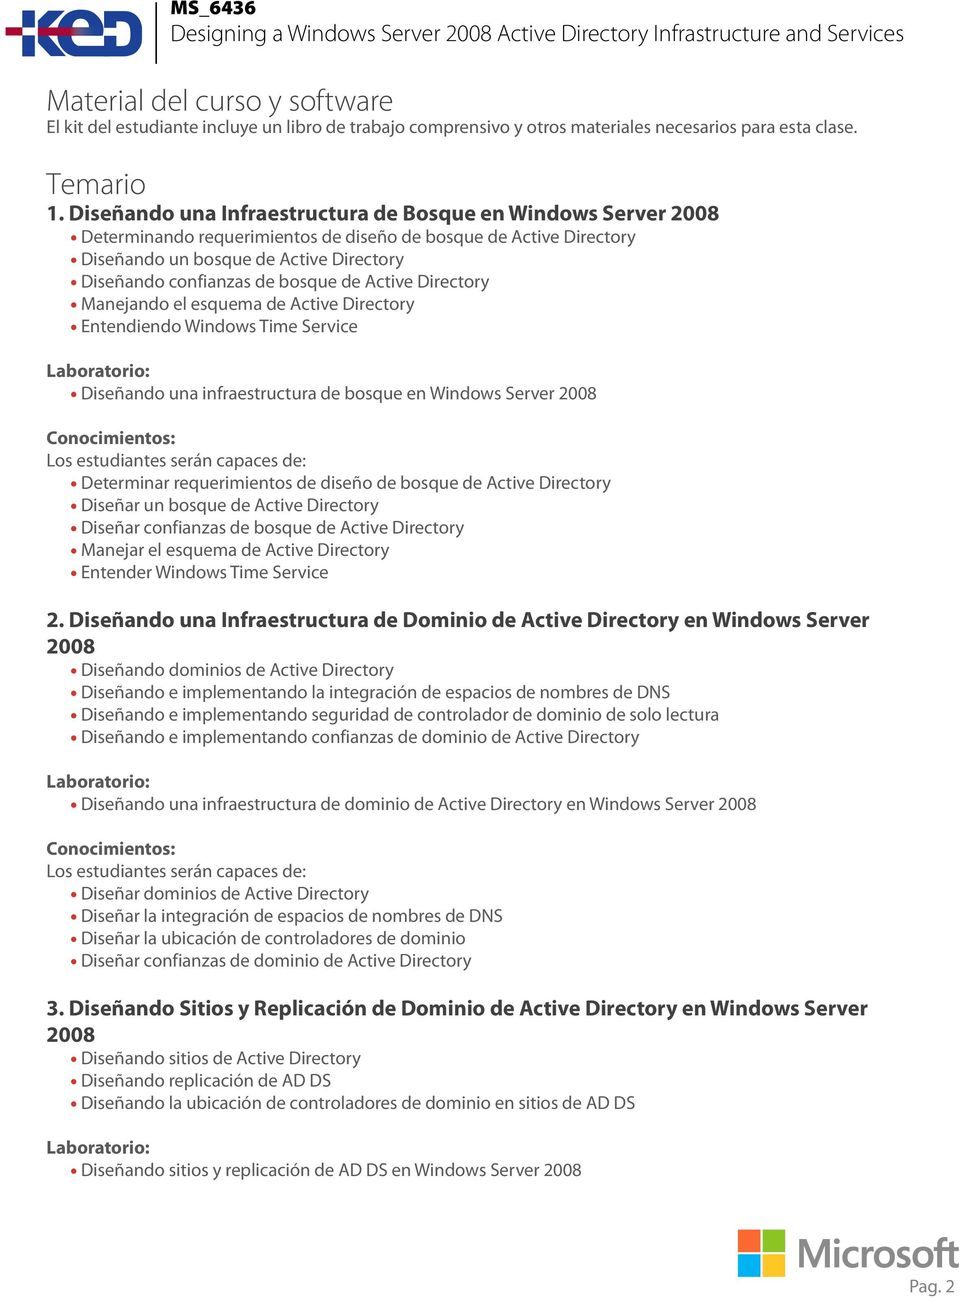 bosque de Active Directory Manejando el esquema de Active Directory Entendiendo Windows Time Service Diseñando una infraestructura de bosque en Windows Server 2008 Determinar requerimientos de diseño